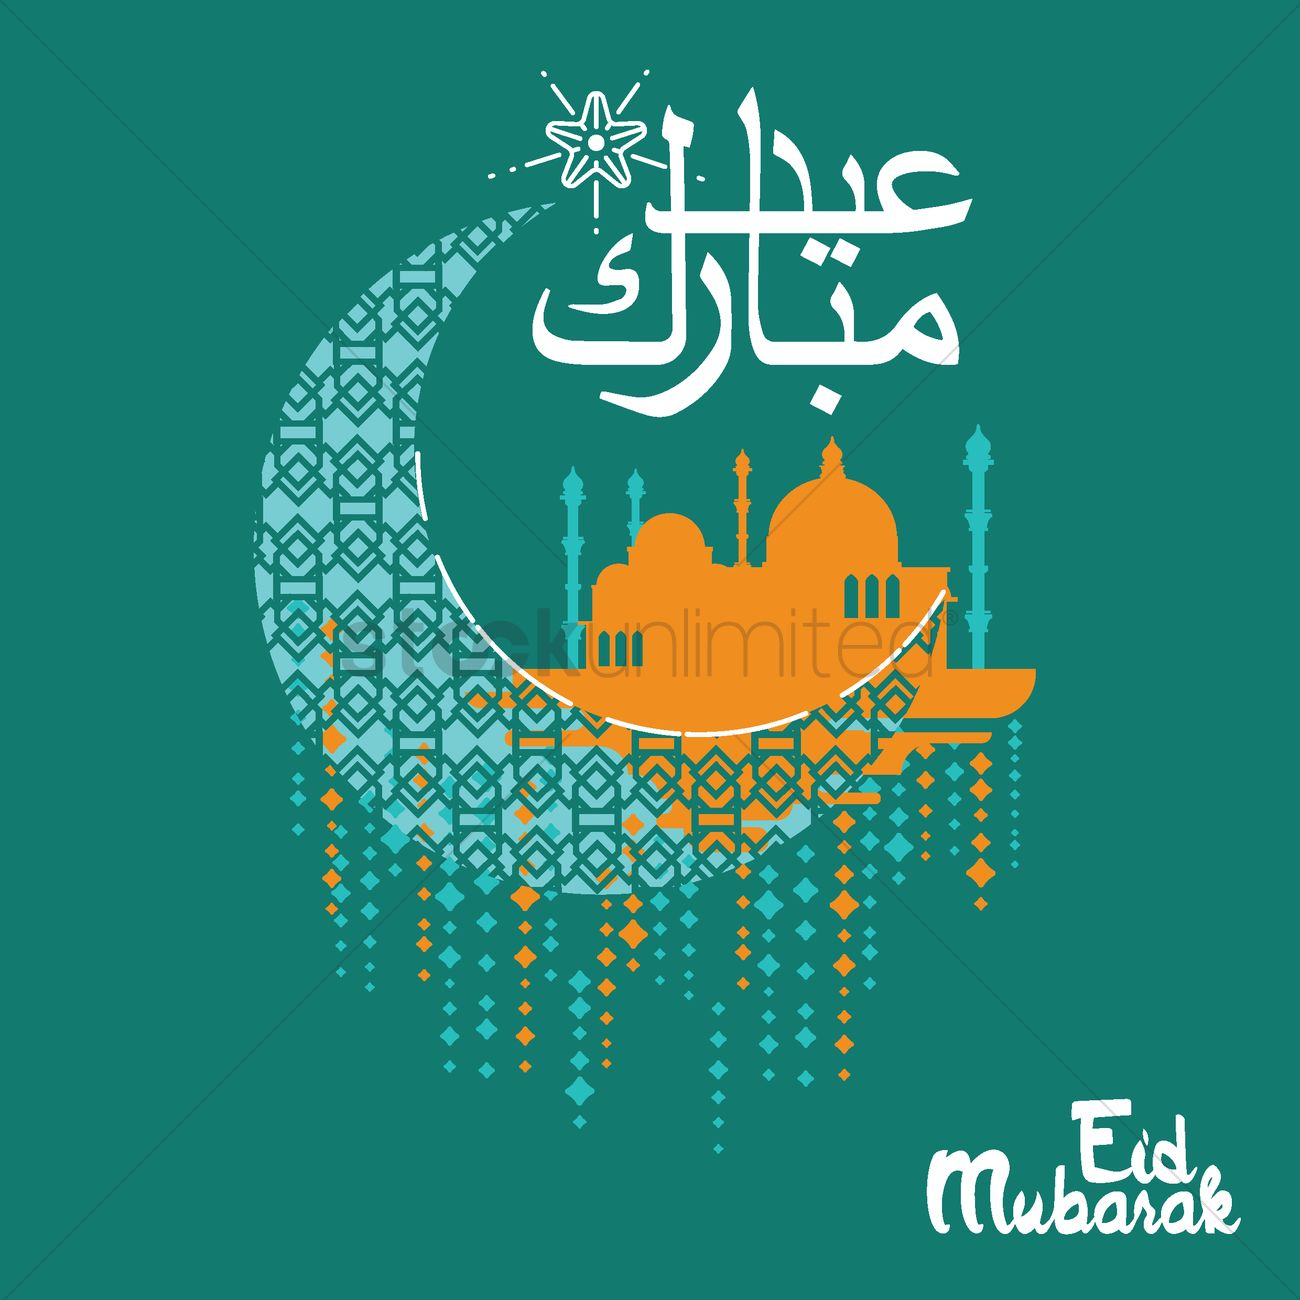 Eid Mubarak With Jawi Greeting Vector Image 1828289 Stockunlimited